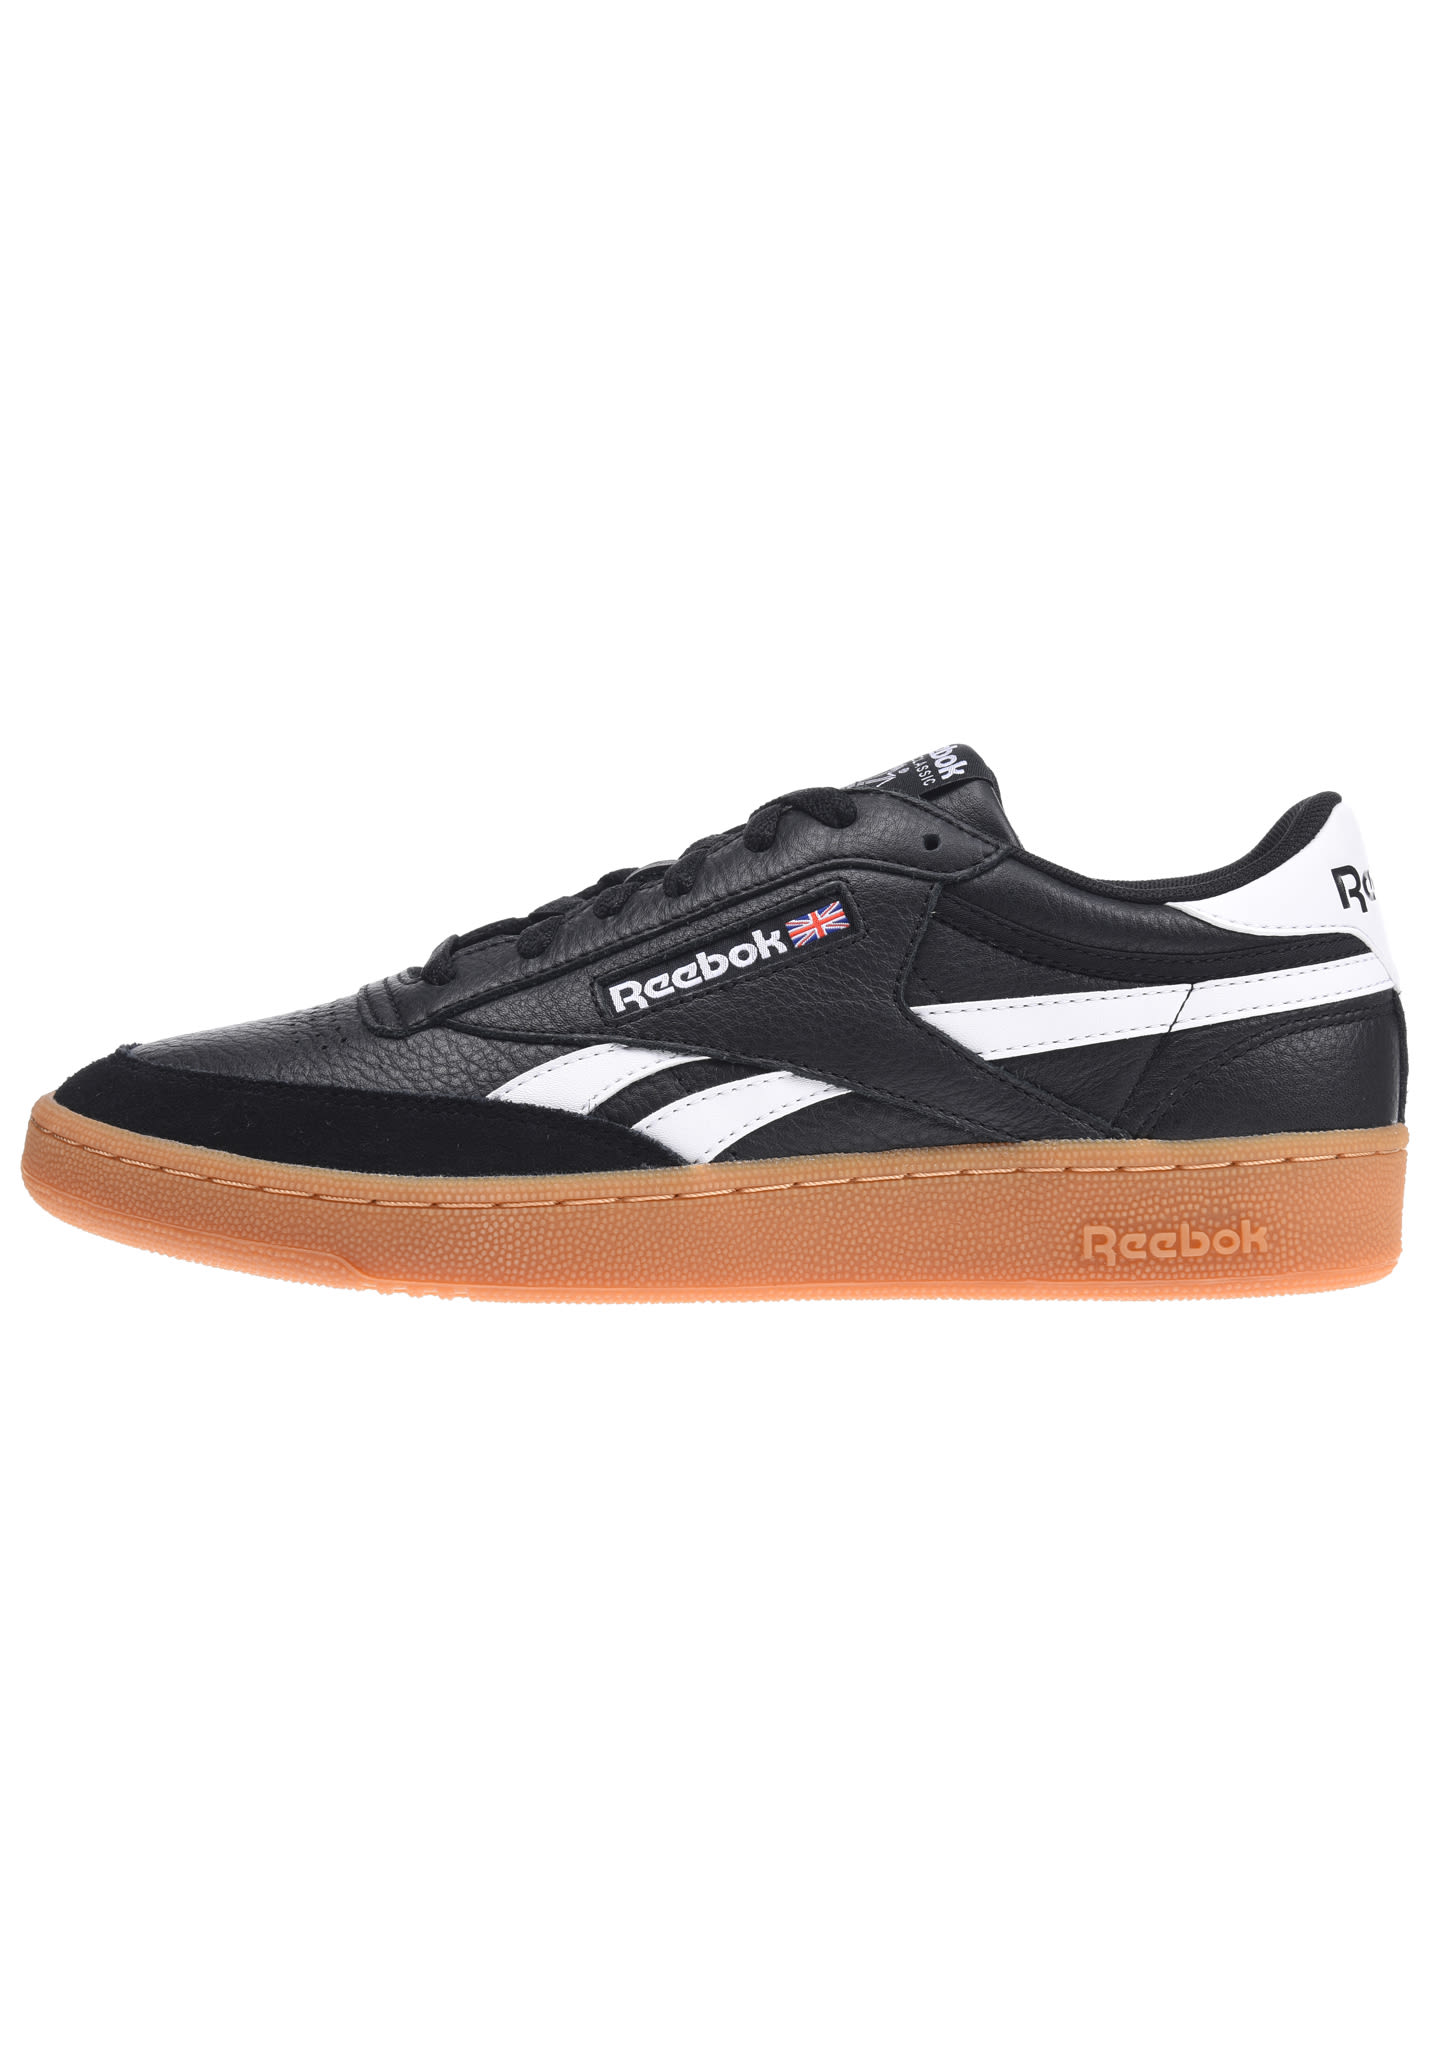 info for 2ad97 f13f0 Reebok Revenge Plus Gum - Sneakers for Men - Black